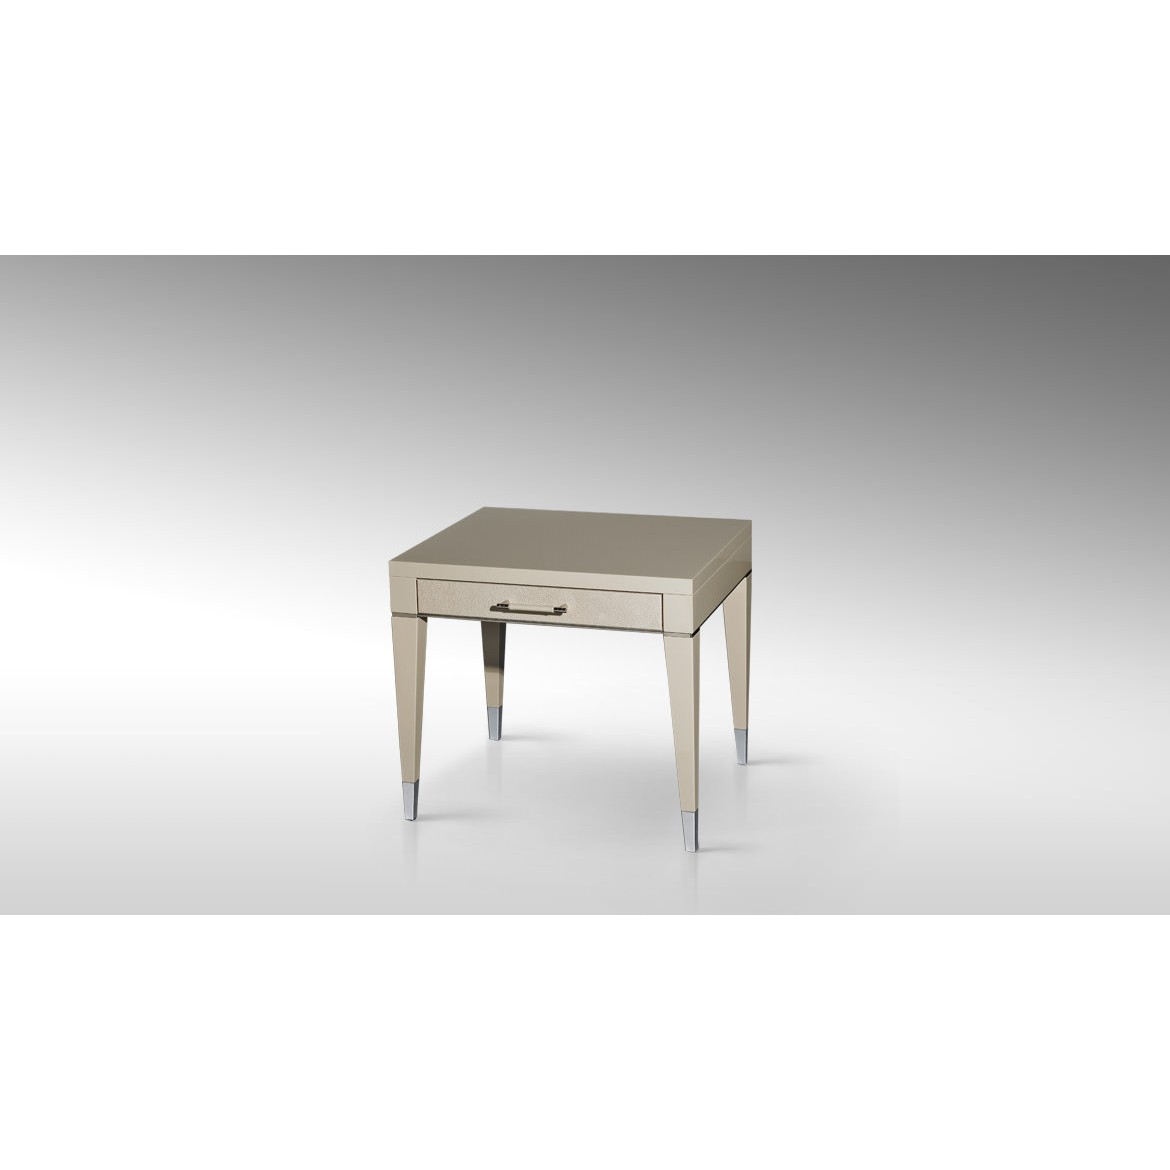 Тумба Dedalo Bedside Table, дизайн Fendi Casa